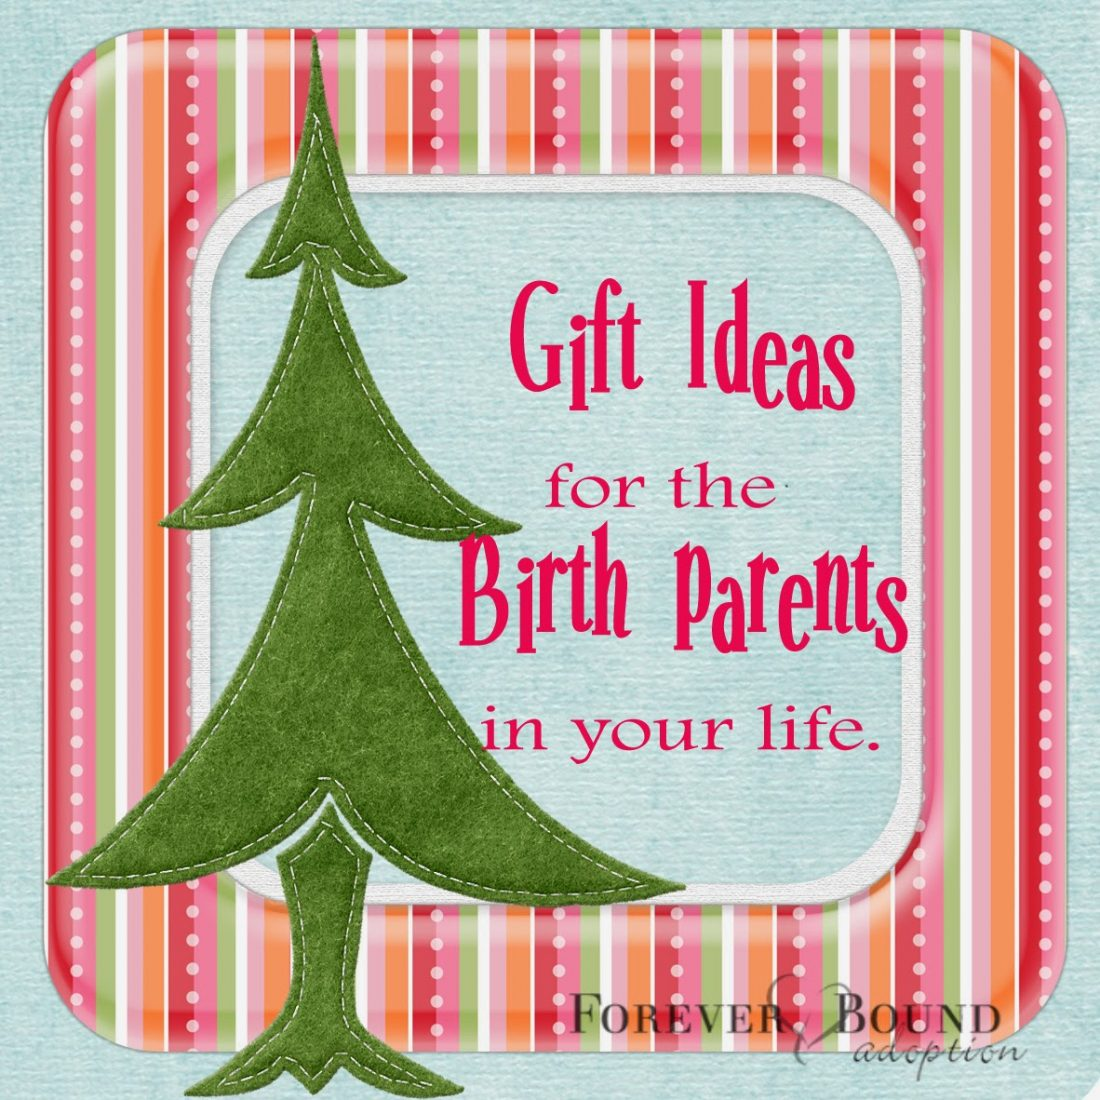 Gift Ideas for the Birth Parents in Your Life - Forever Bound Adoption